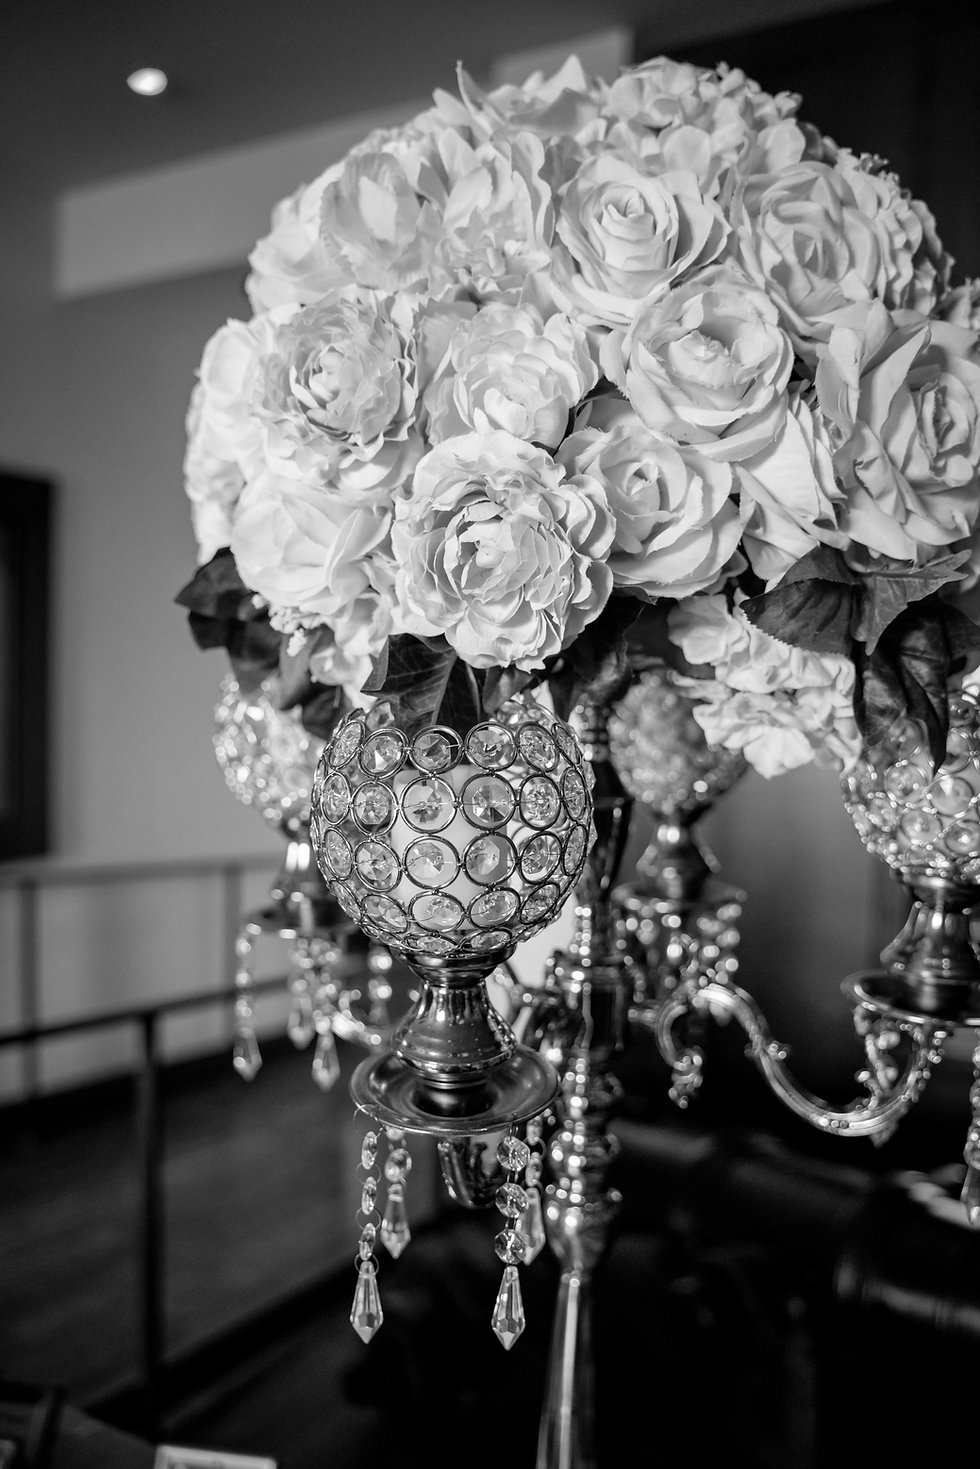 Flowers and Chandelier